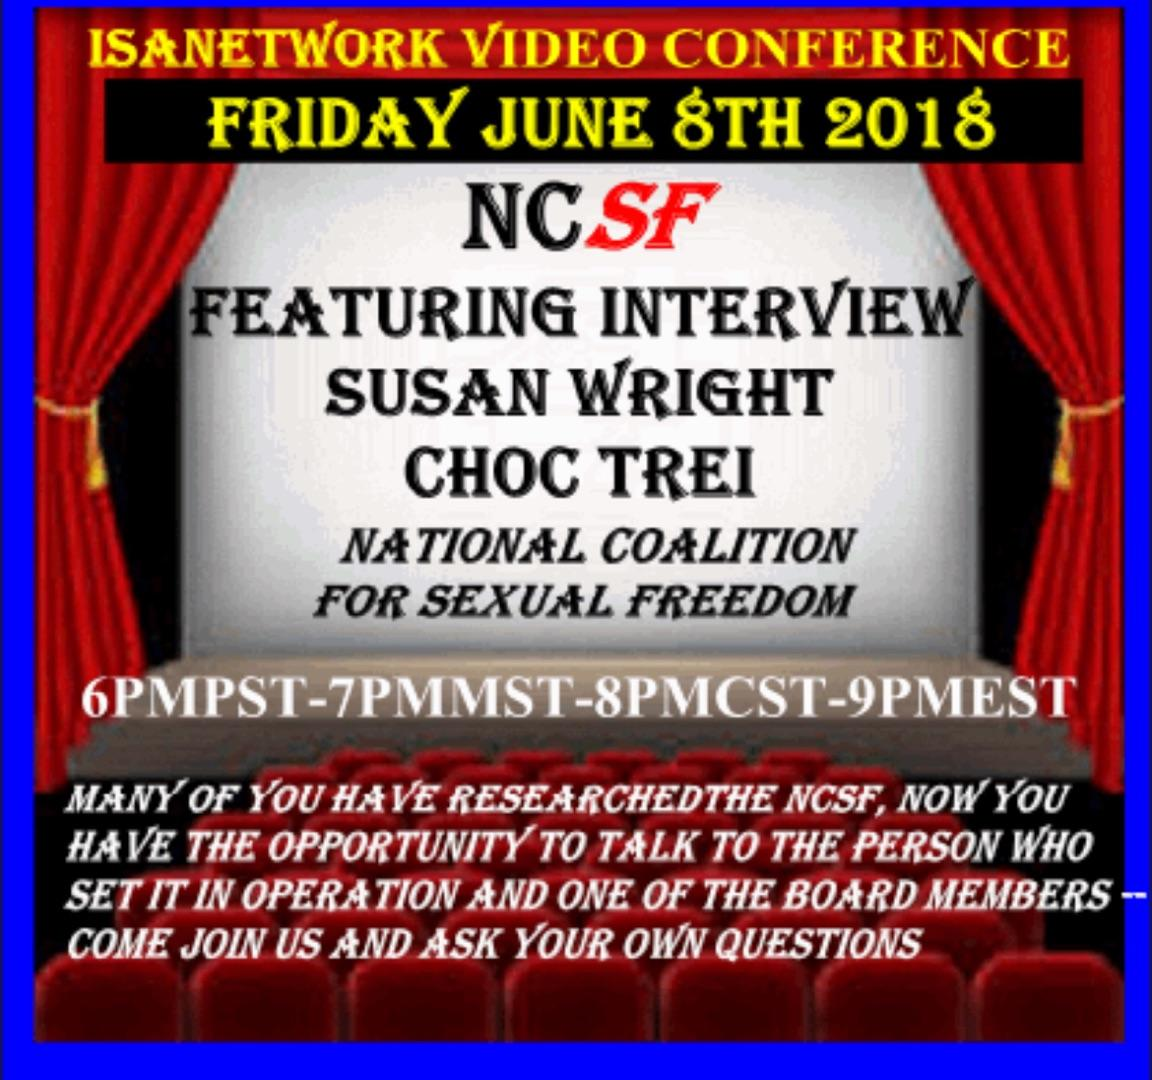 Interview with NCSF Board Members Choc Trei and Susan Wright